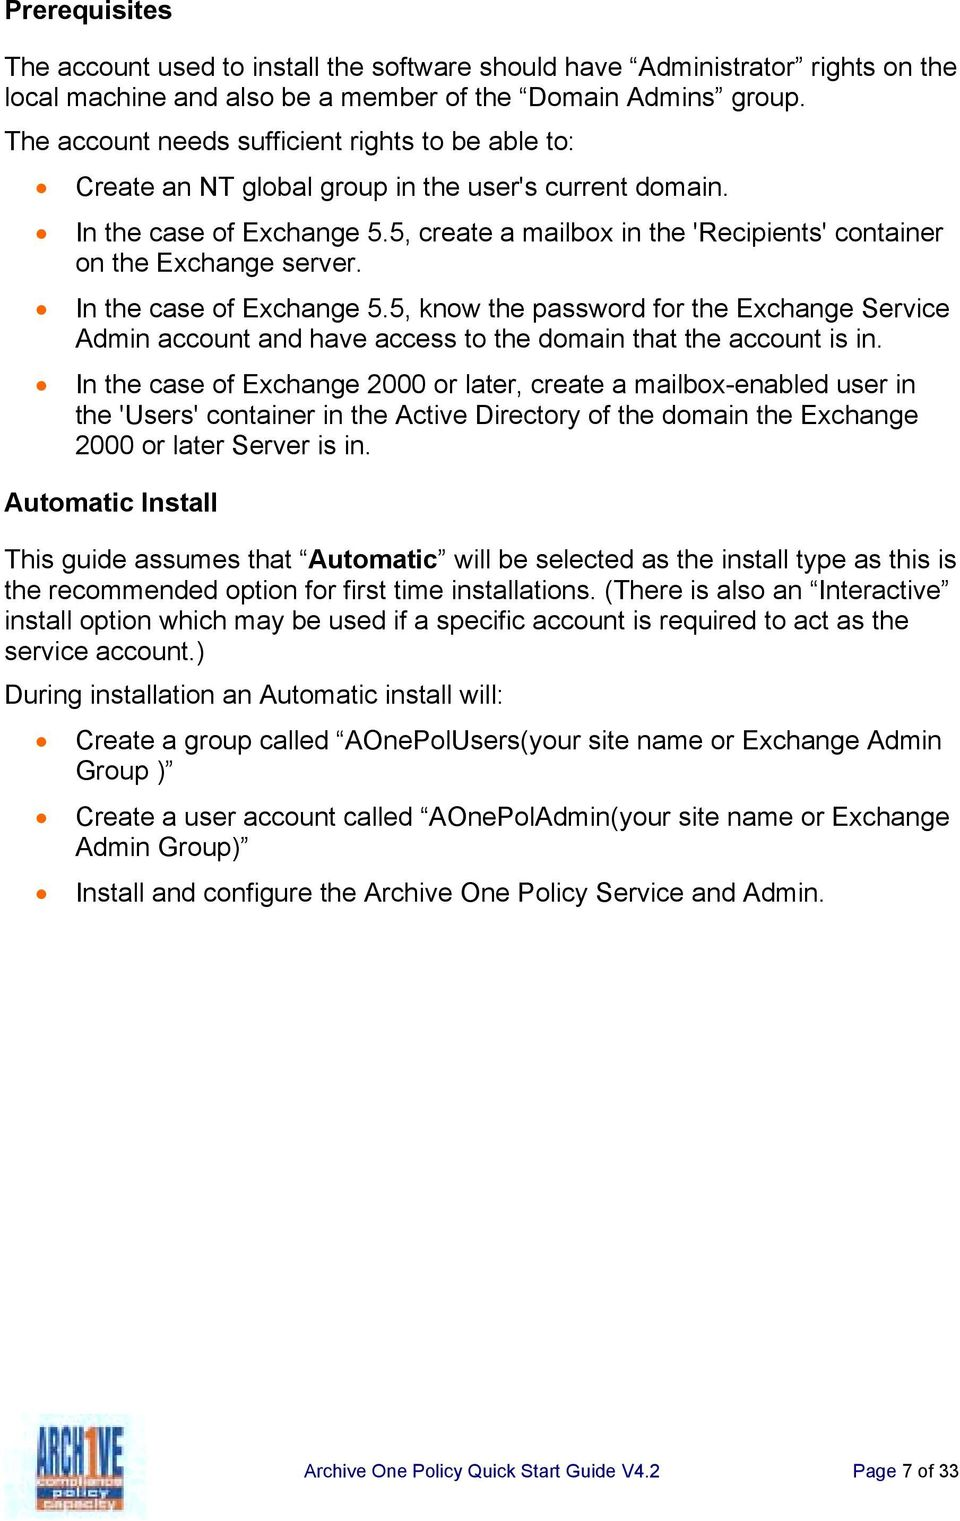 5, create a mailbox in the 'Recipients' container on the Exchange server. In the case of Exchange 5.